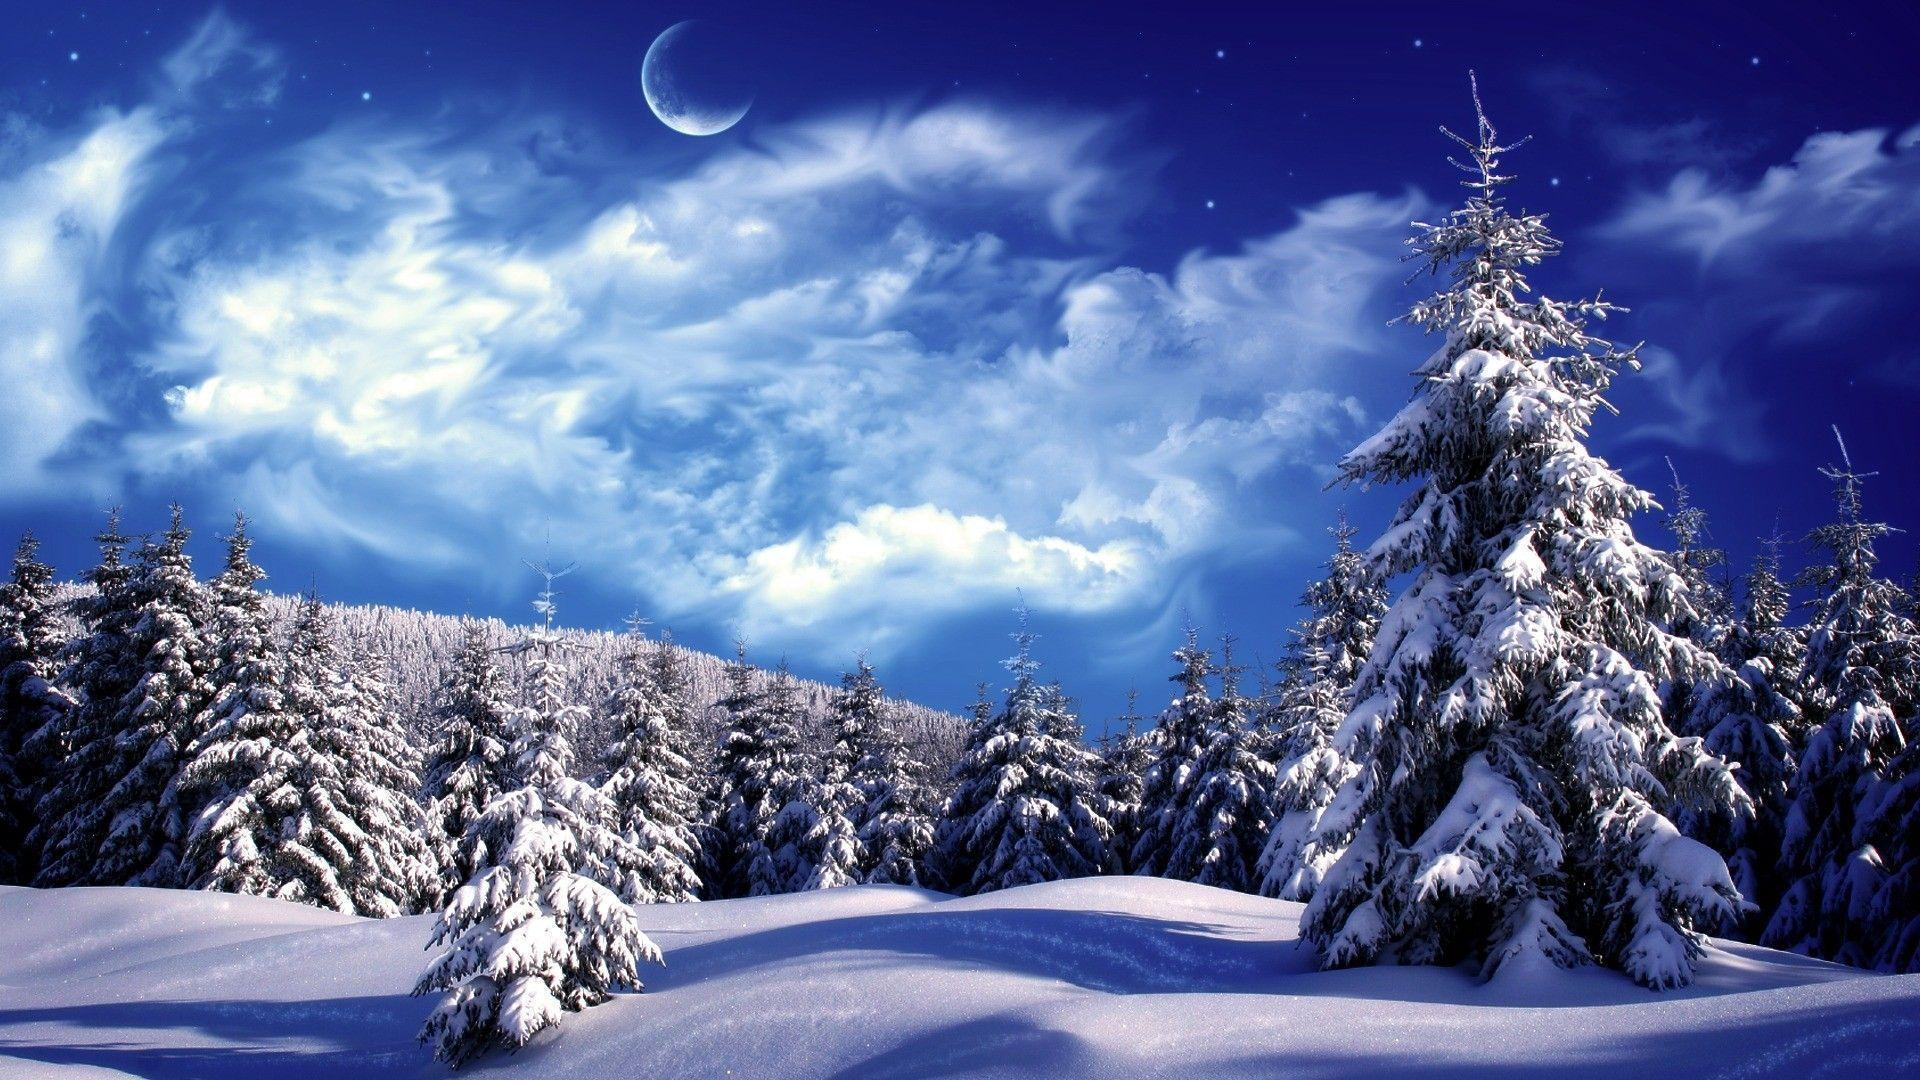 Winter Snow Wallpapers 28 Backgrounds